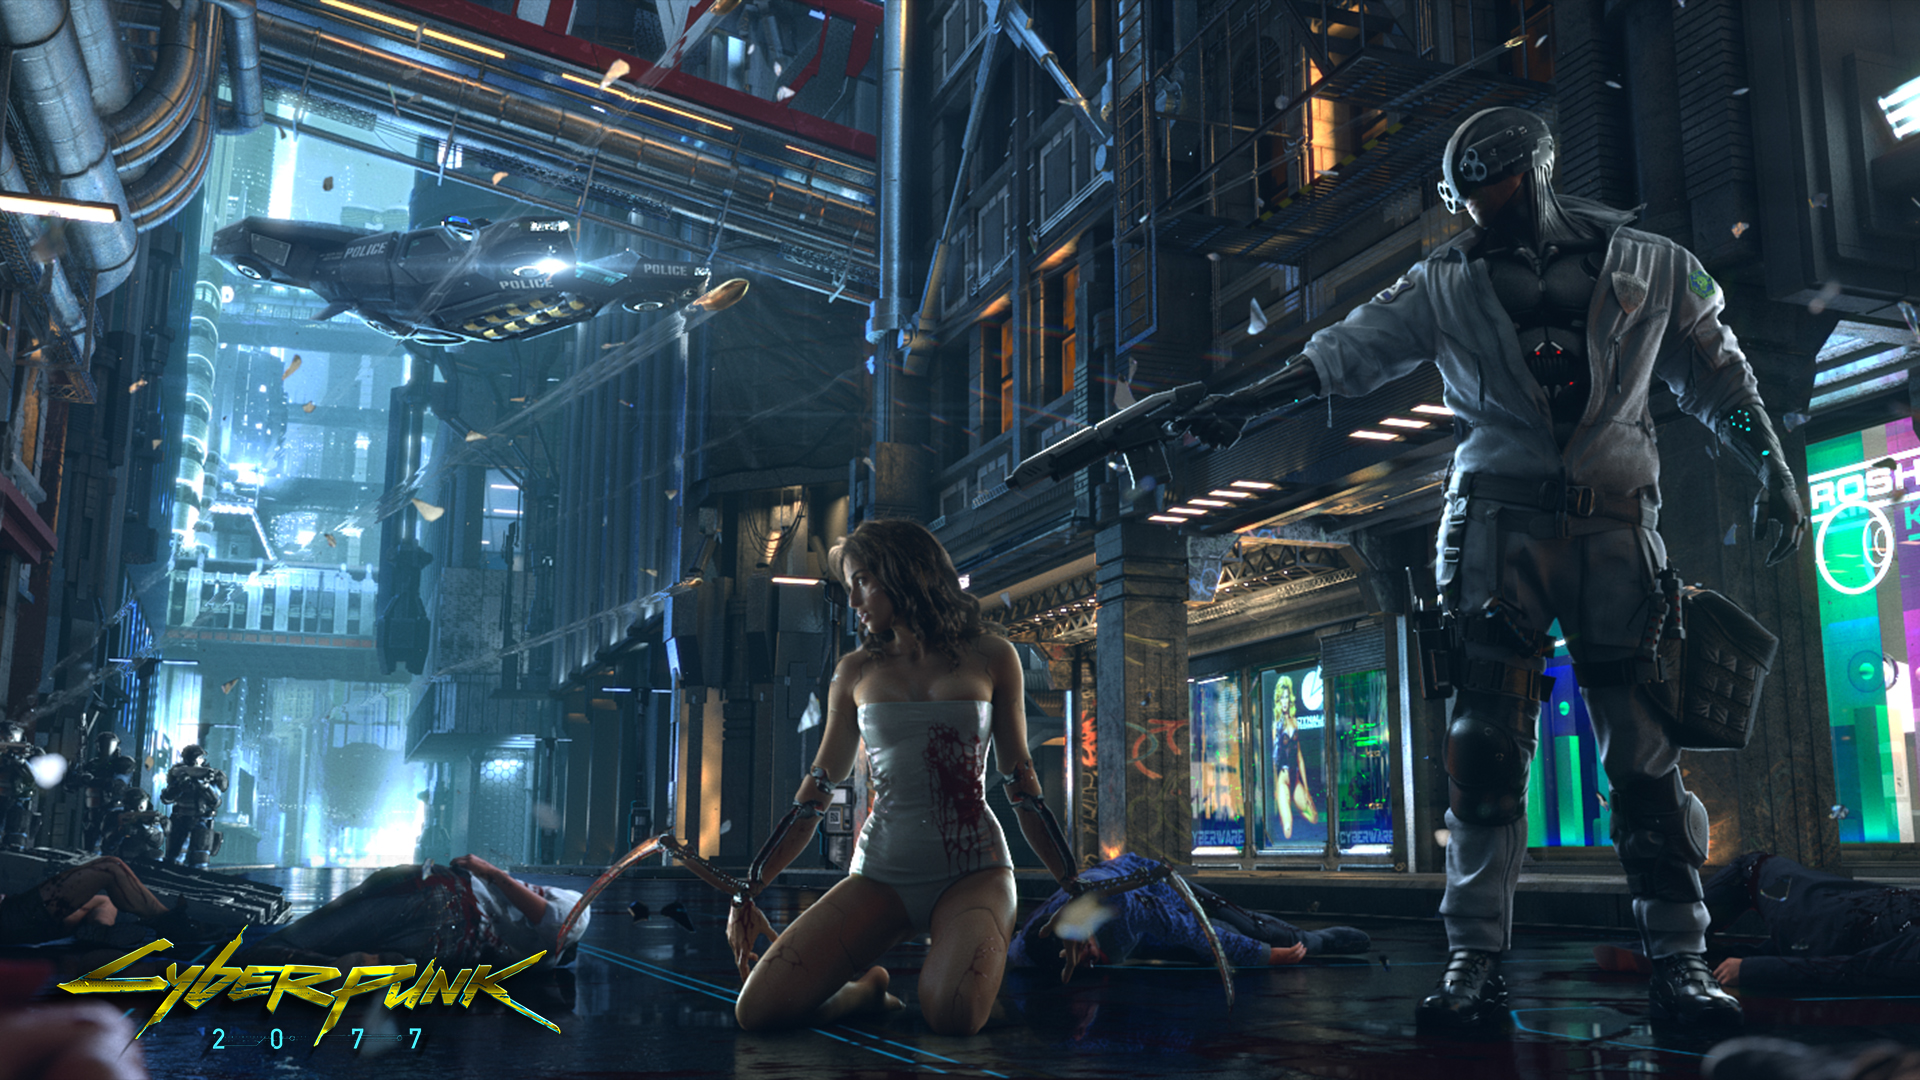 Photo of Vom vedea Cyberpunk 2077 la E3